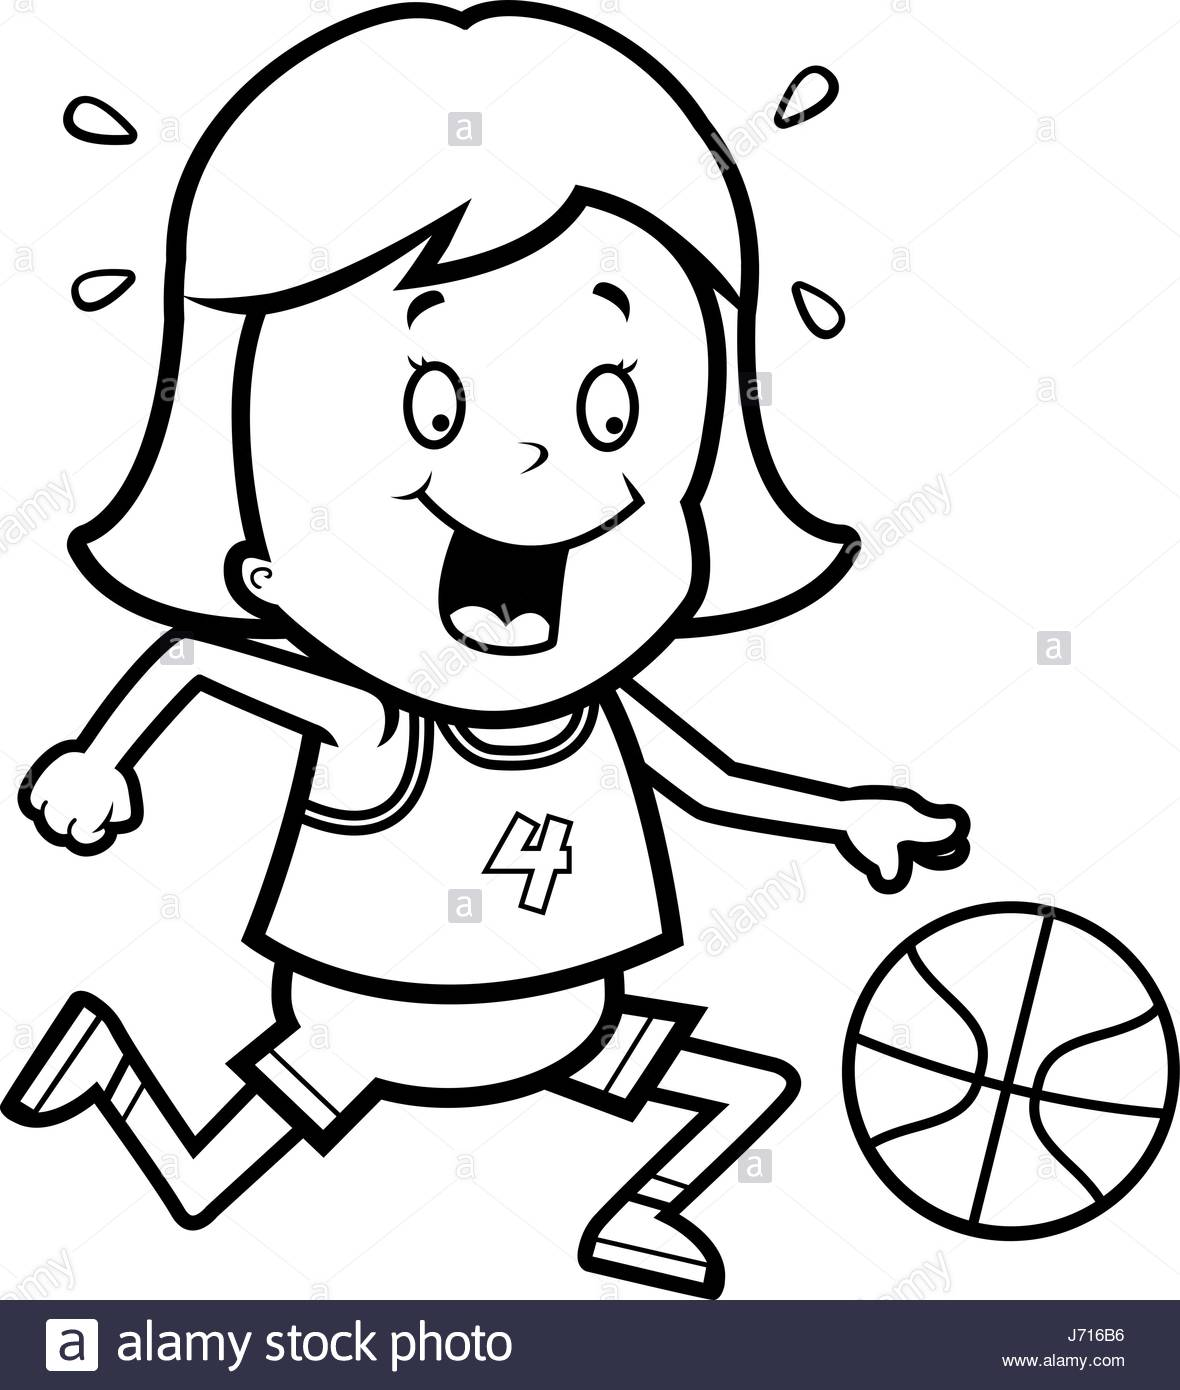 1180x1390 A Cartoon Illustration Of A Child Playing Basketball Stock Vector